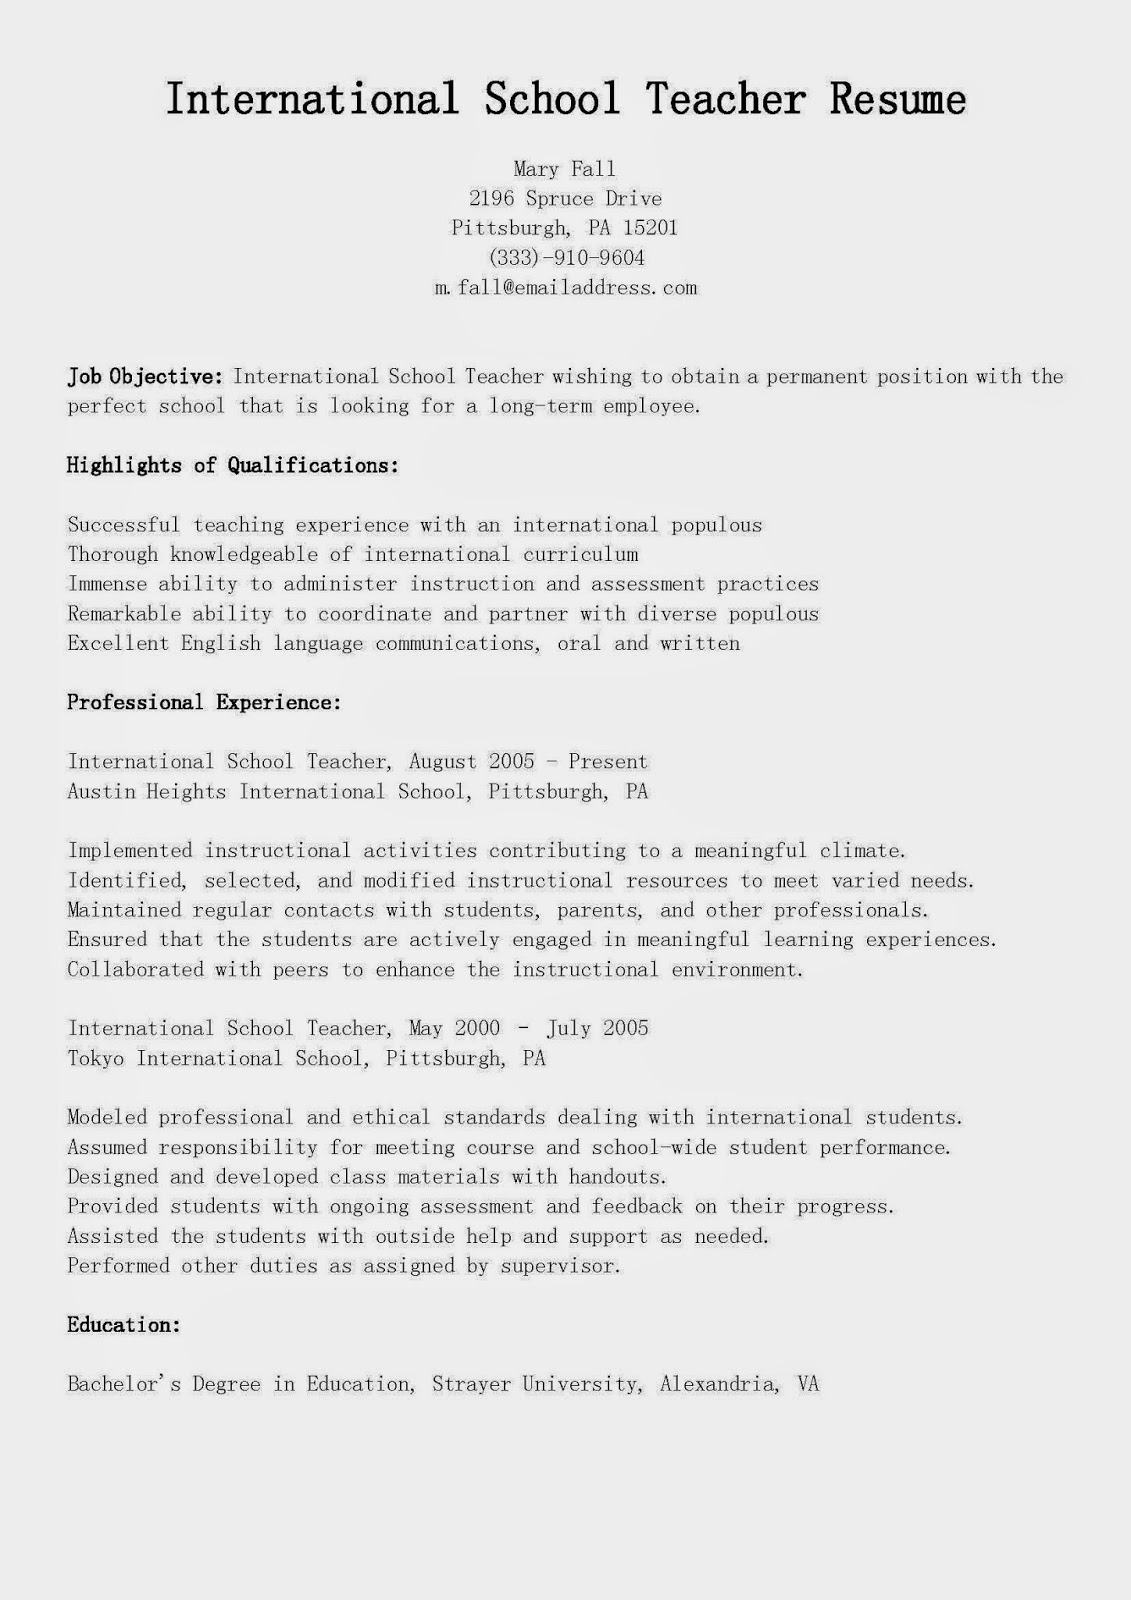 Resume for a school teacher